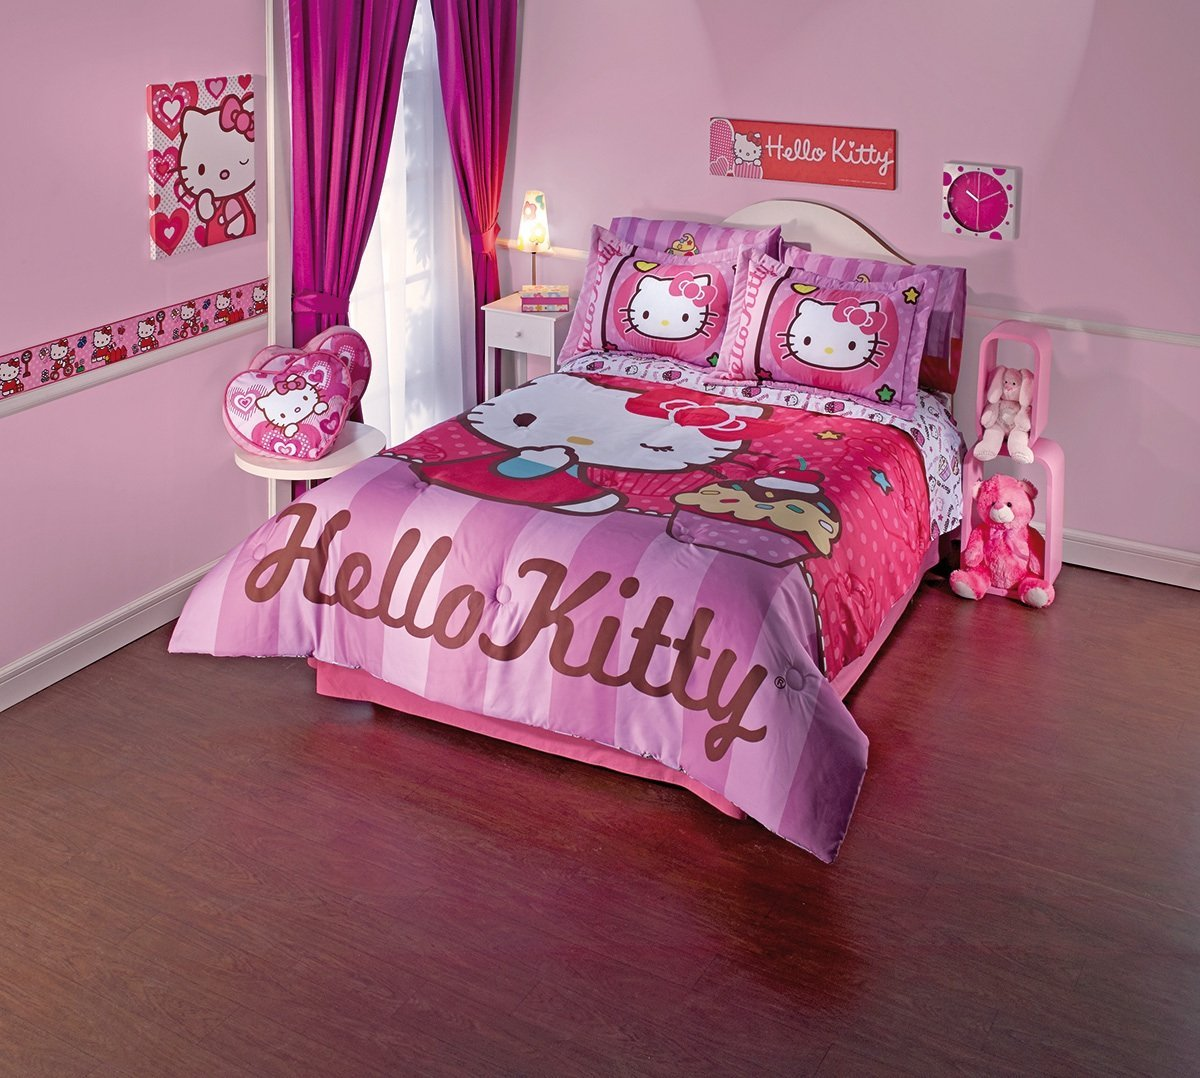 Hello Kitty Bedroom Set